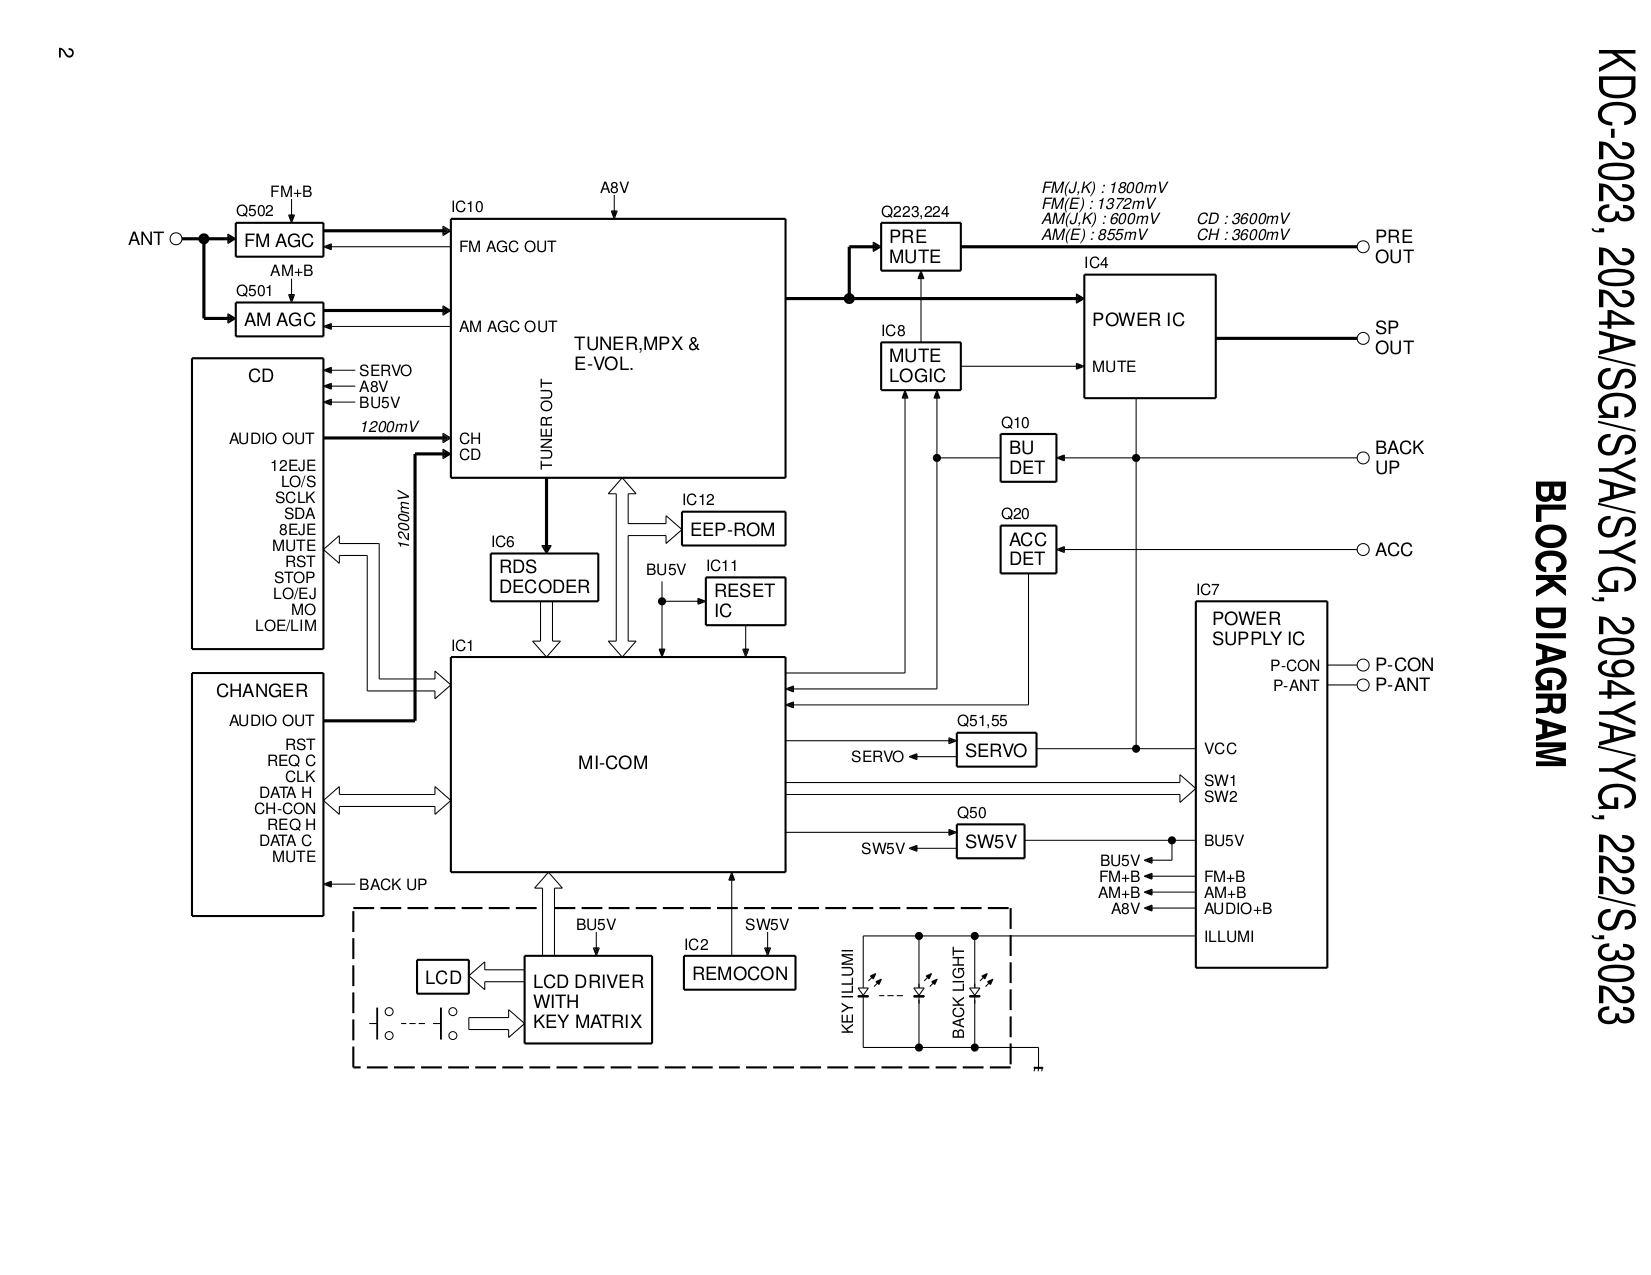 kdc2023 2024 2094 222 3023.pdf 1 kenwood kdc bt555u wiring diagram wiring diagram for kenwood kdc kenwood kdc bt555u wiring diagram at panicattacktreatment.co